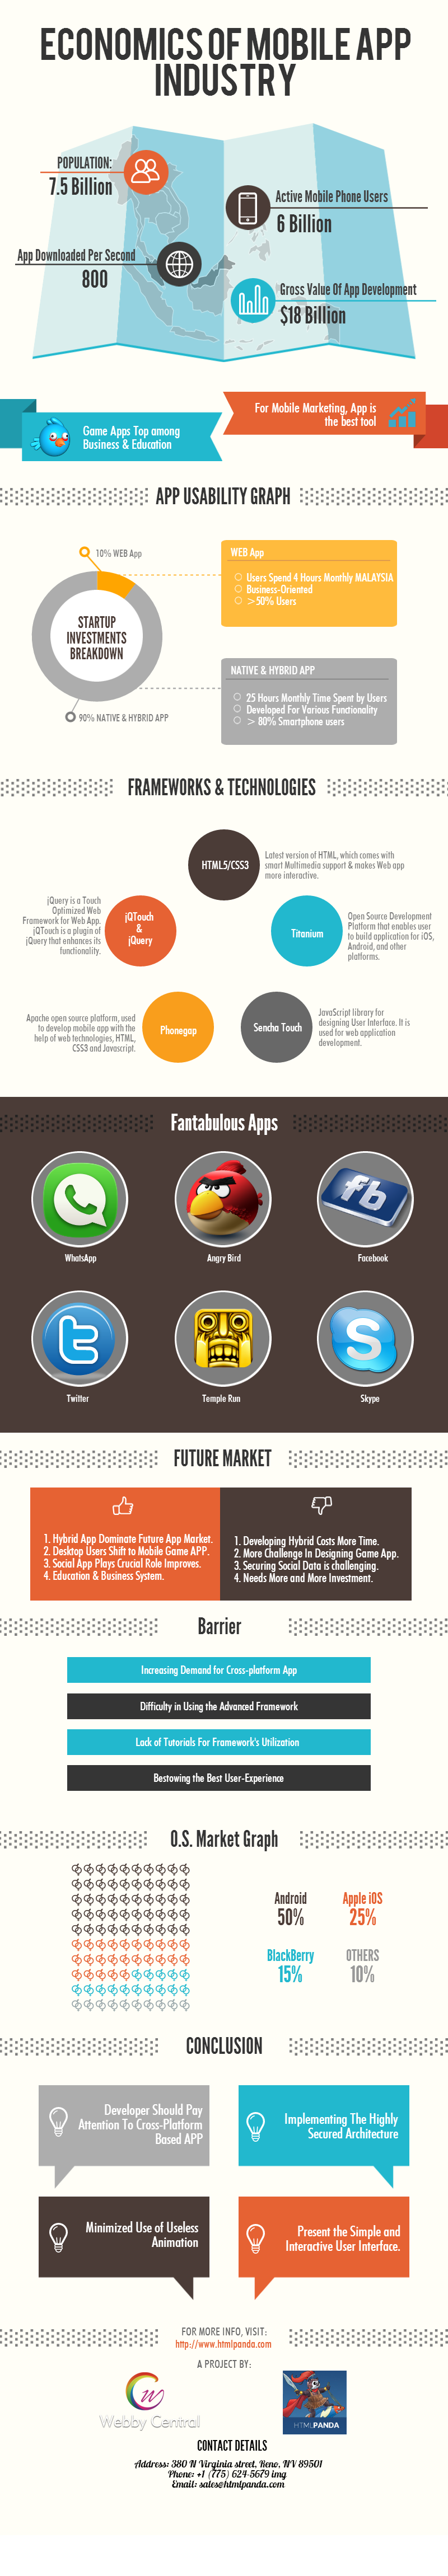 economia-apps-moviles-infografia